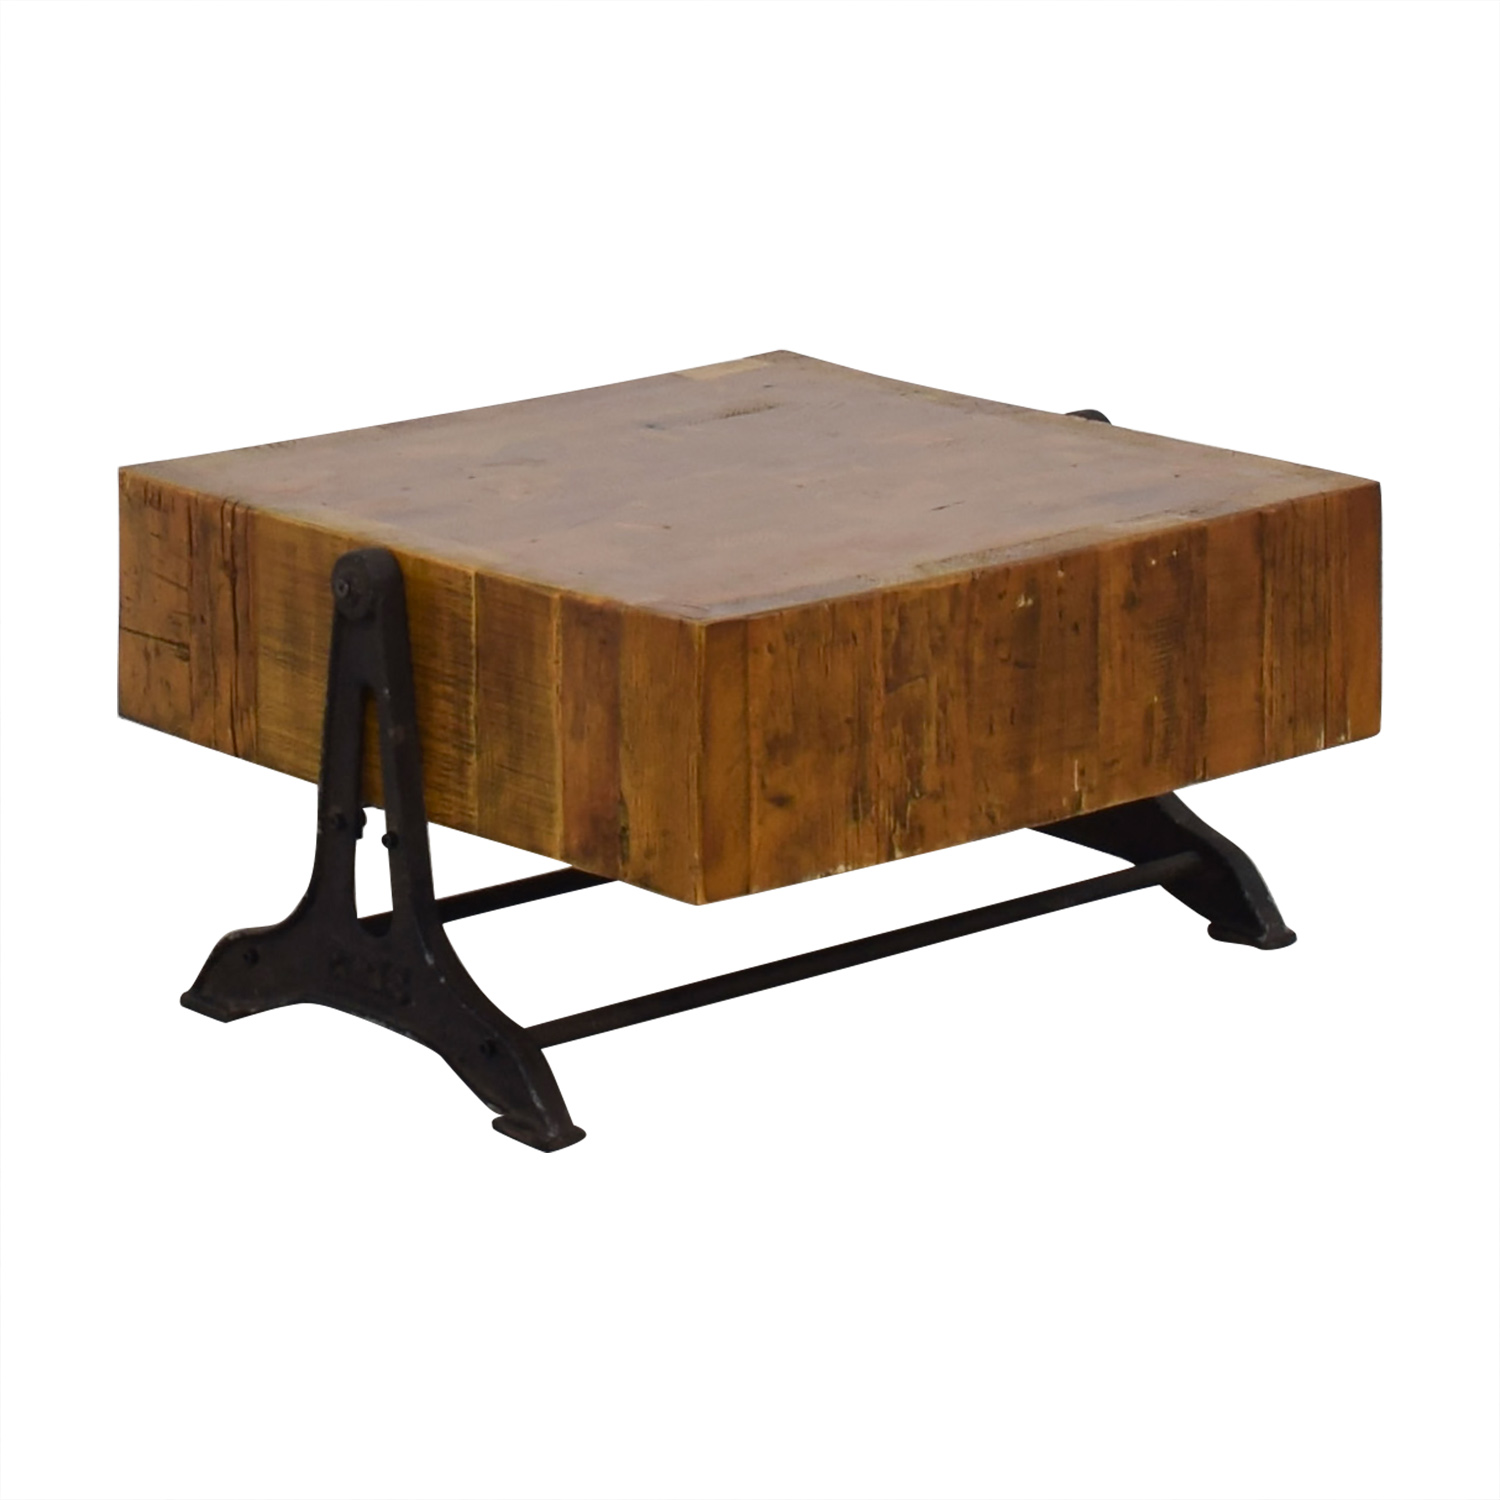 buy Restoration Hardware Restoration Hardware Reclaimed Russian Industrial Coffee Table online